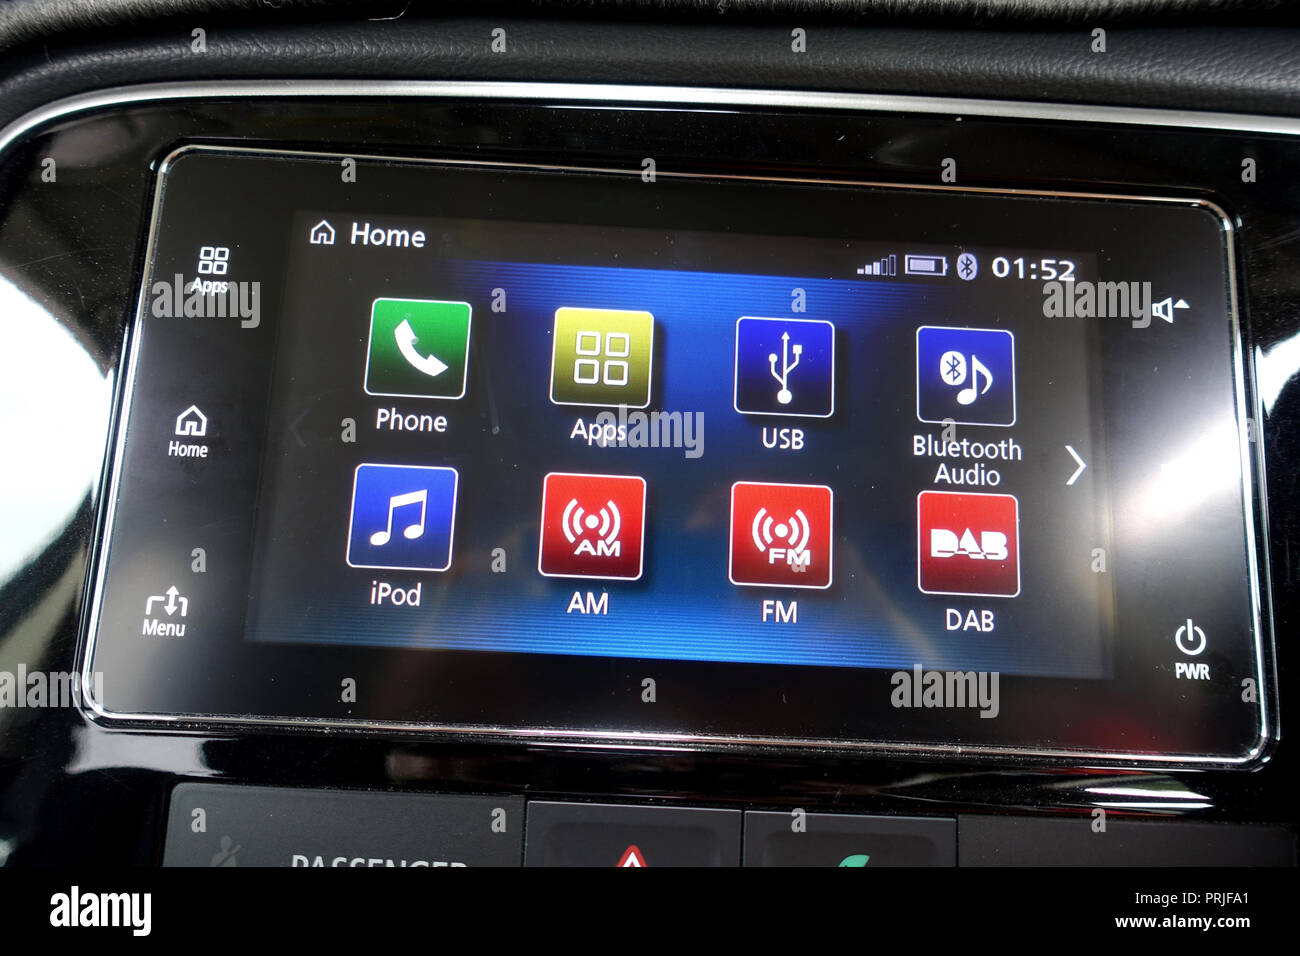 Mitsubishi Outlander touch screen - Stock Image